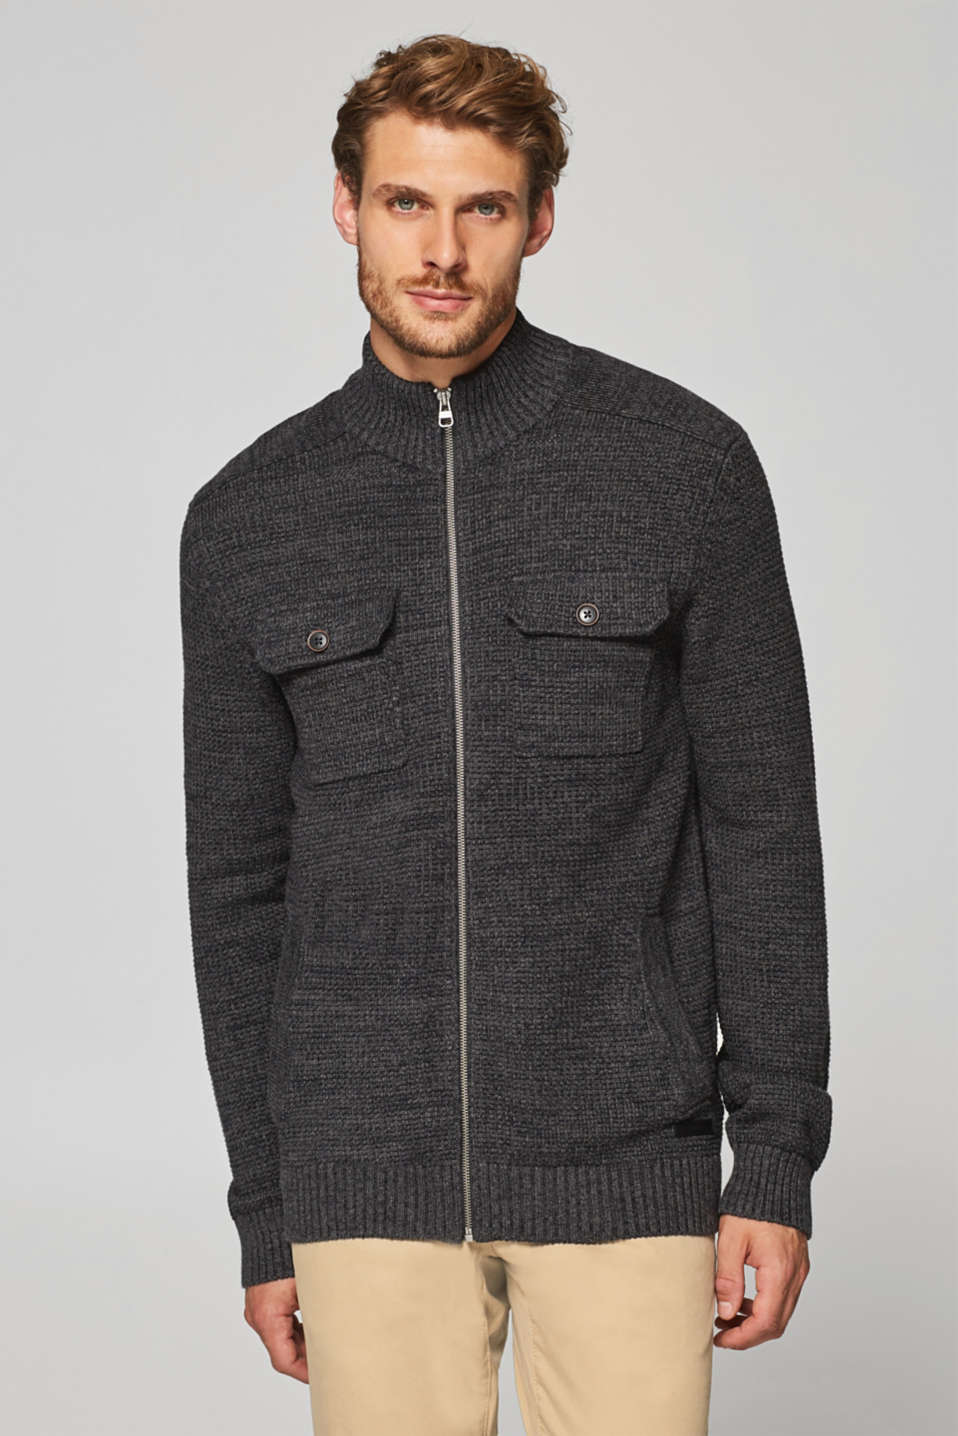 Esprit - 100% cotton cardigan with a breast pocket